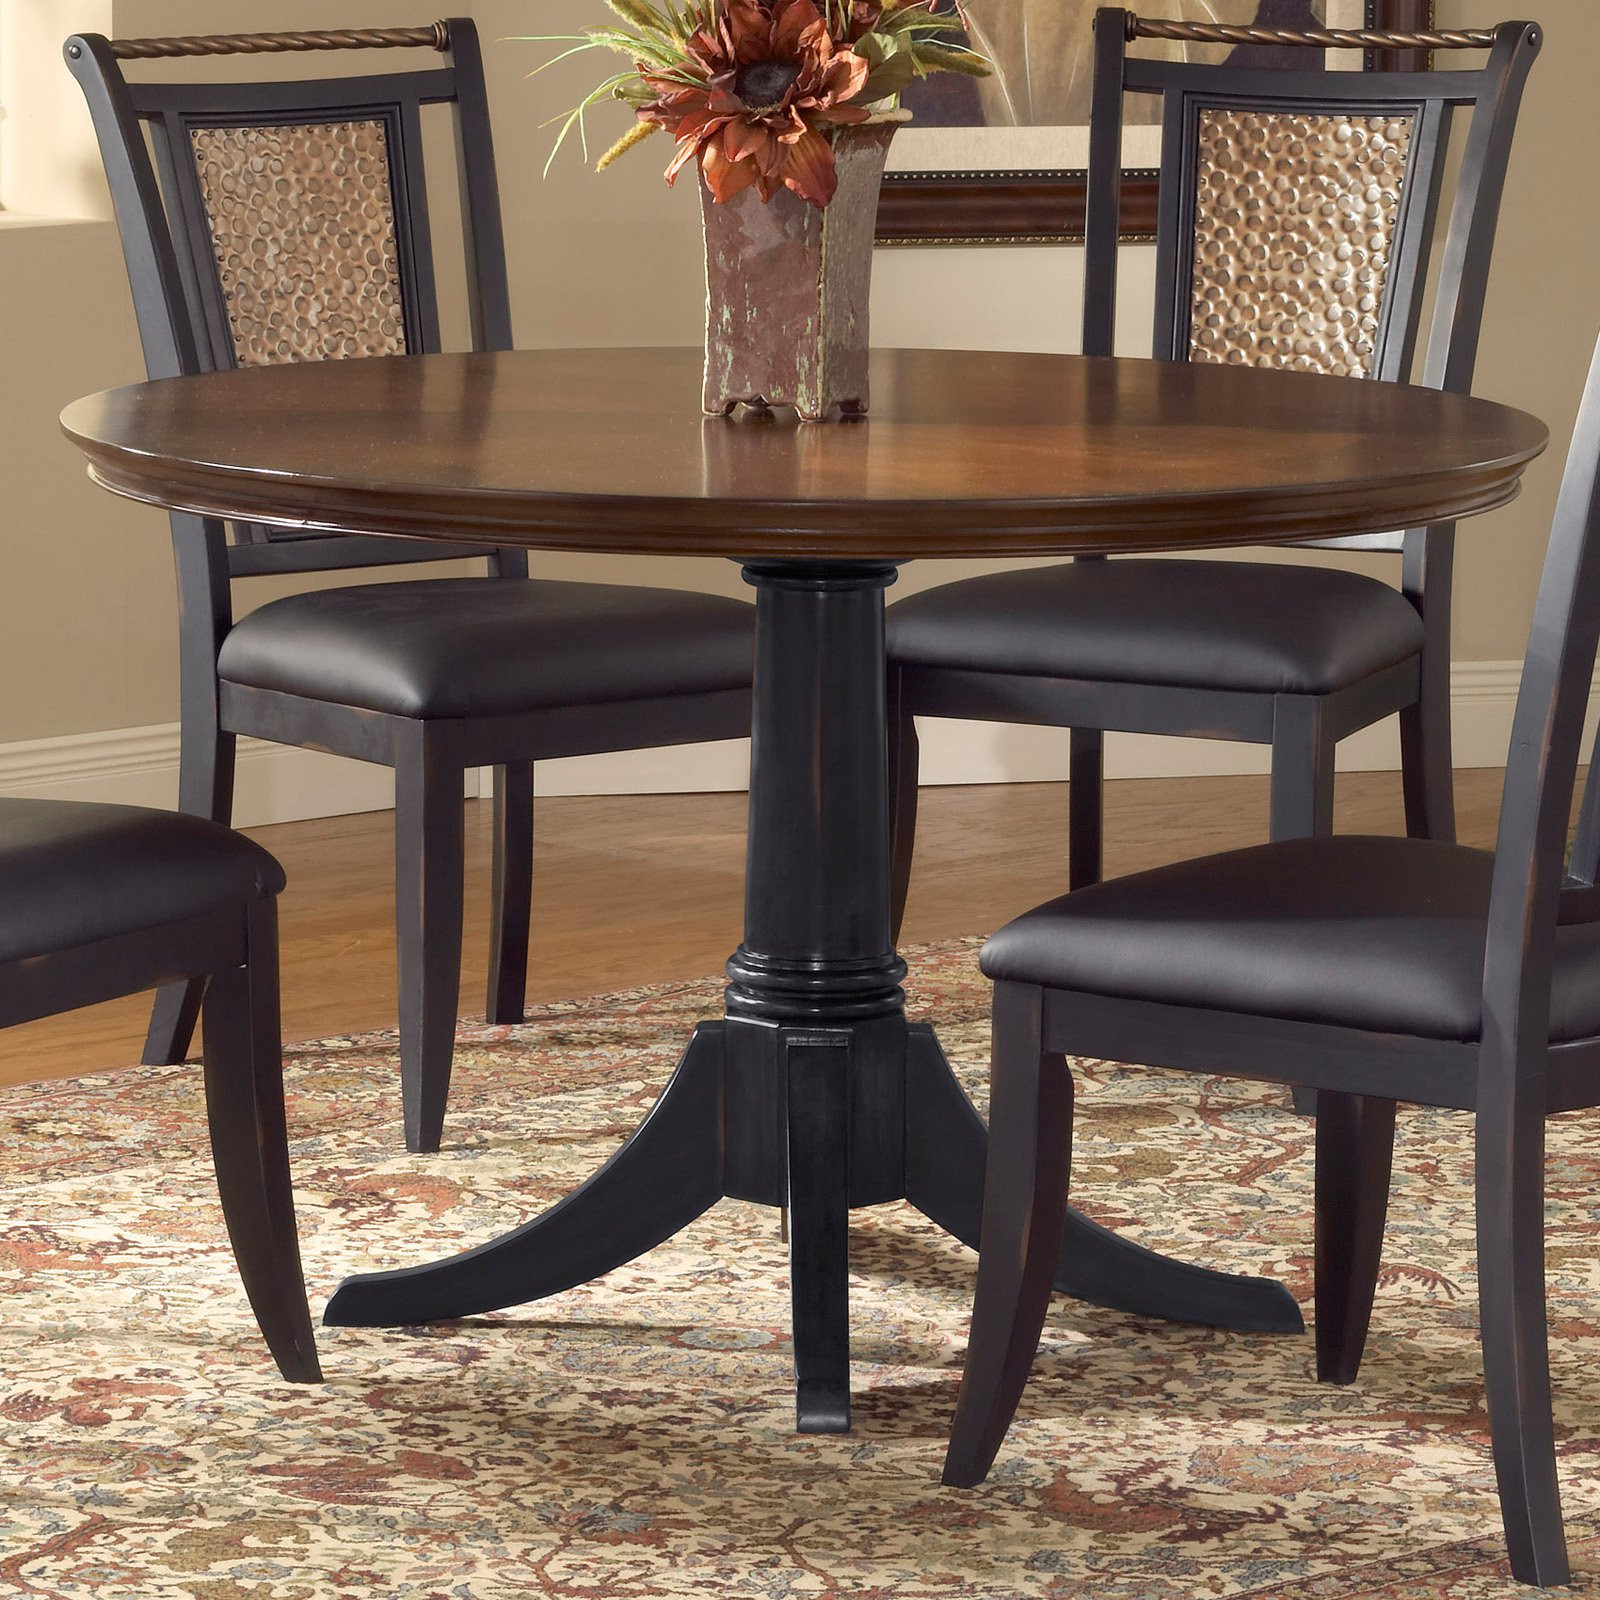 Best ideas about 48 Inch Round Dining Table . Save or Pin Norwood 48 Inch Round Dining Table Distressed Black Base Now.